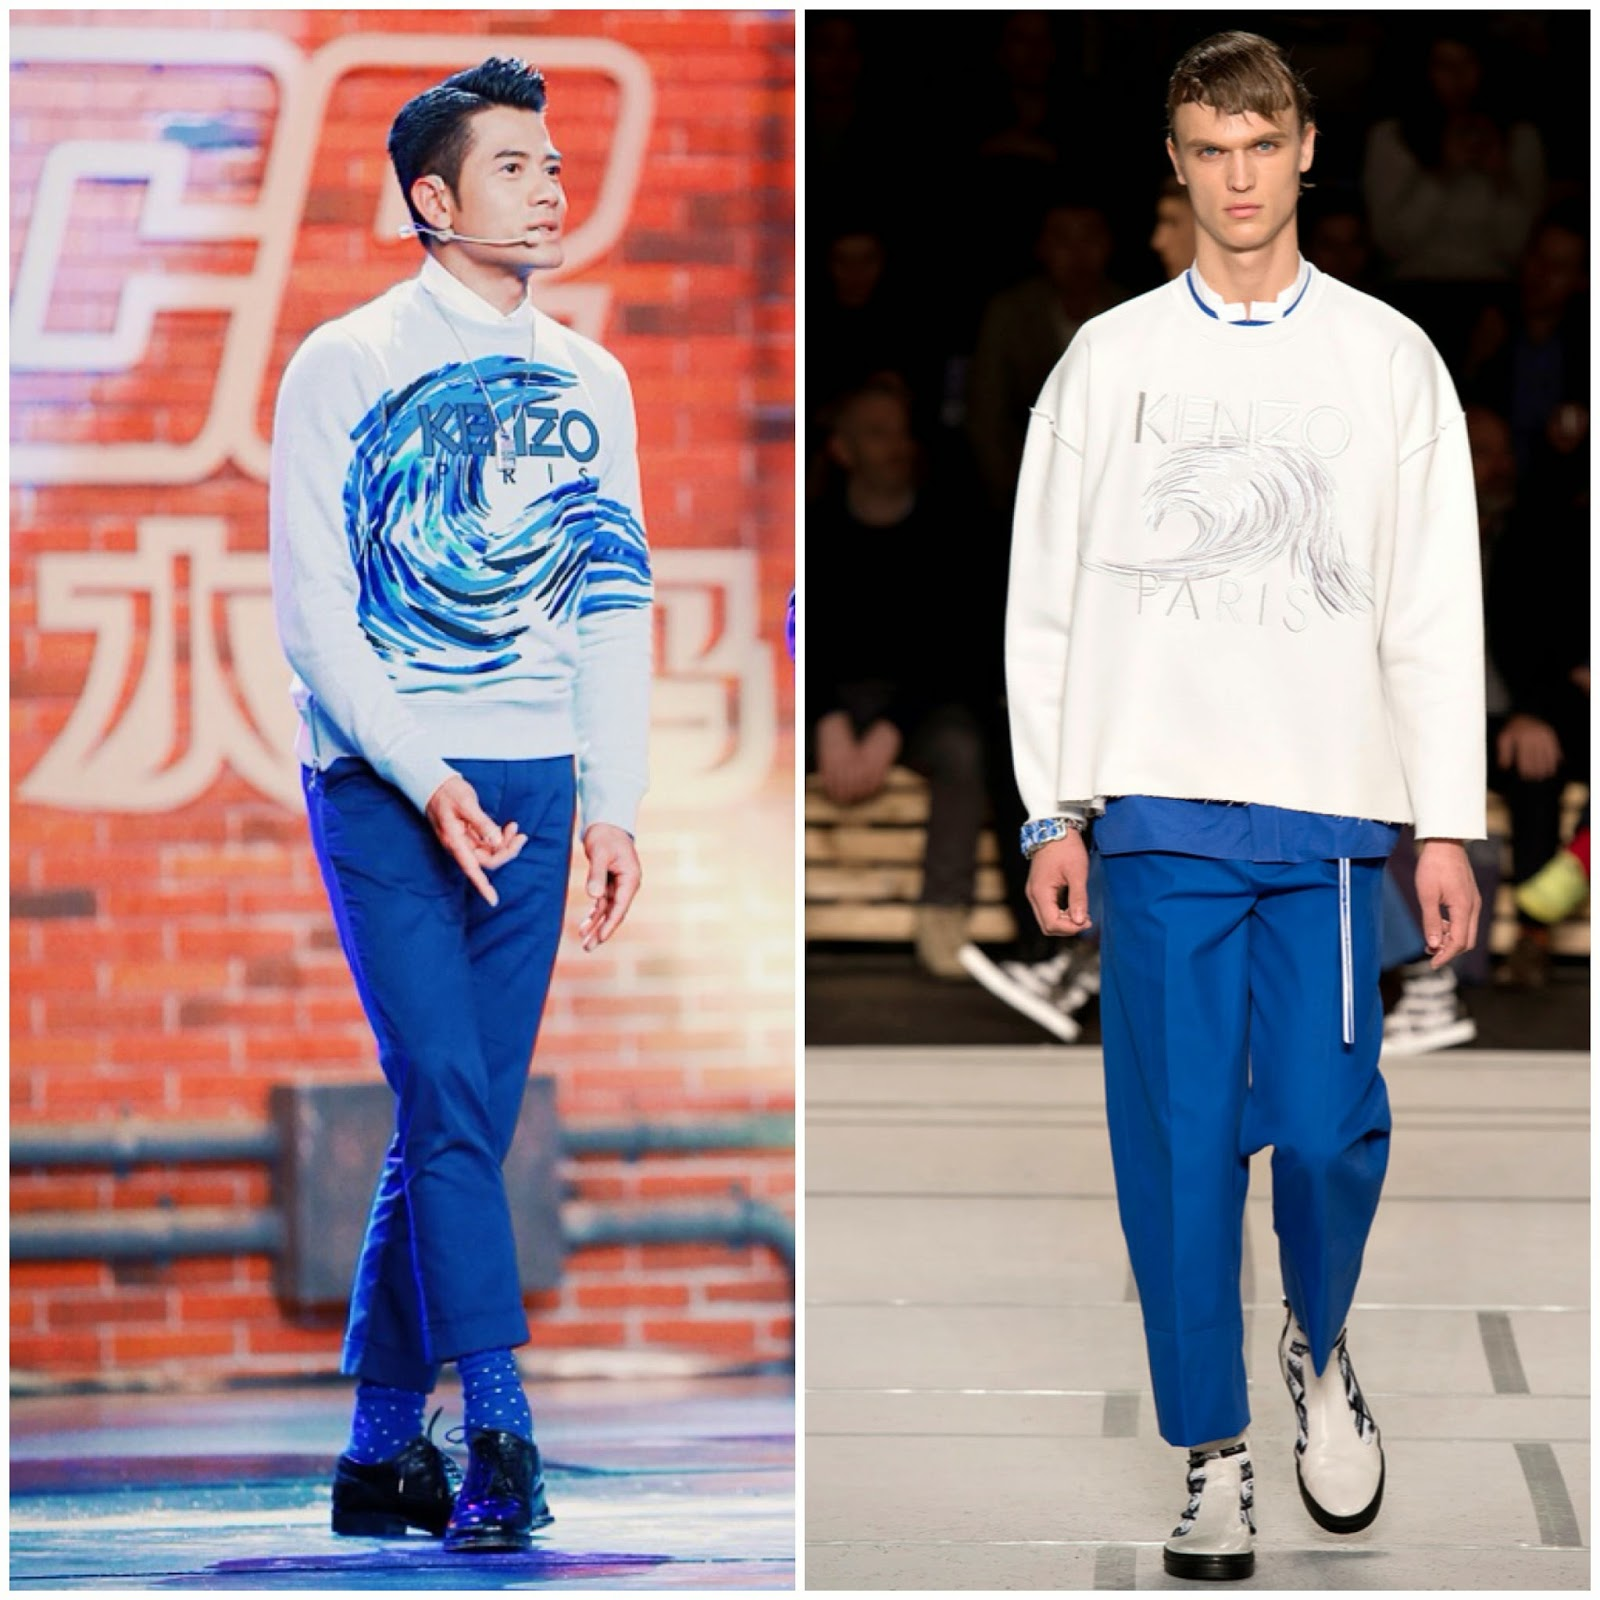 Aaron Kwok Fu-Shing in Kenzo - So You Think You Can Dance, China 郭富城亮相[中国好舞蹈]